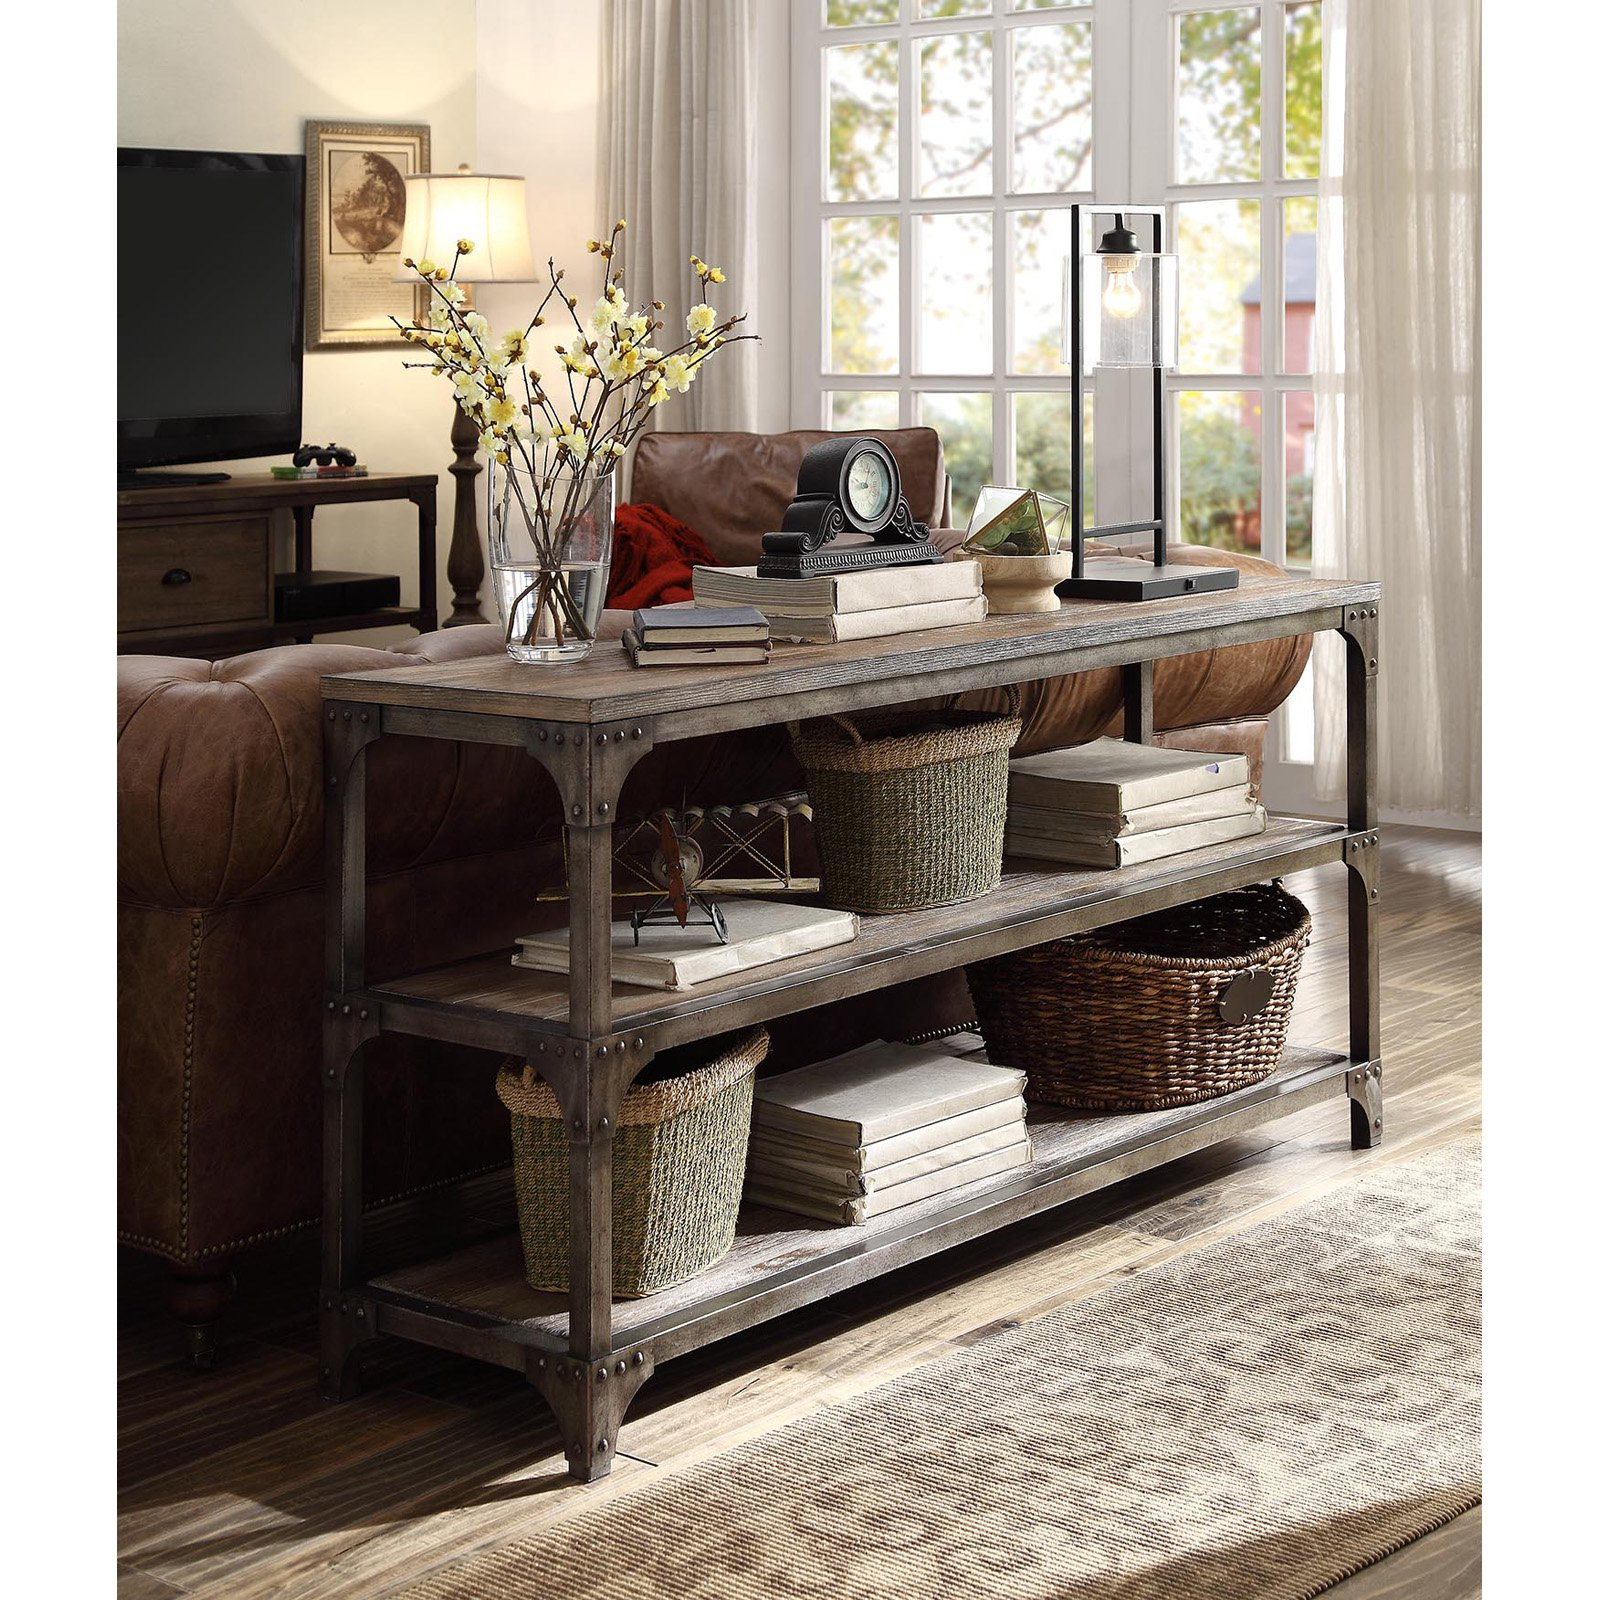 "Acme Gorden TV Stand for TVs up to 55"", Weathered Oak and Antique Silver"